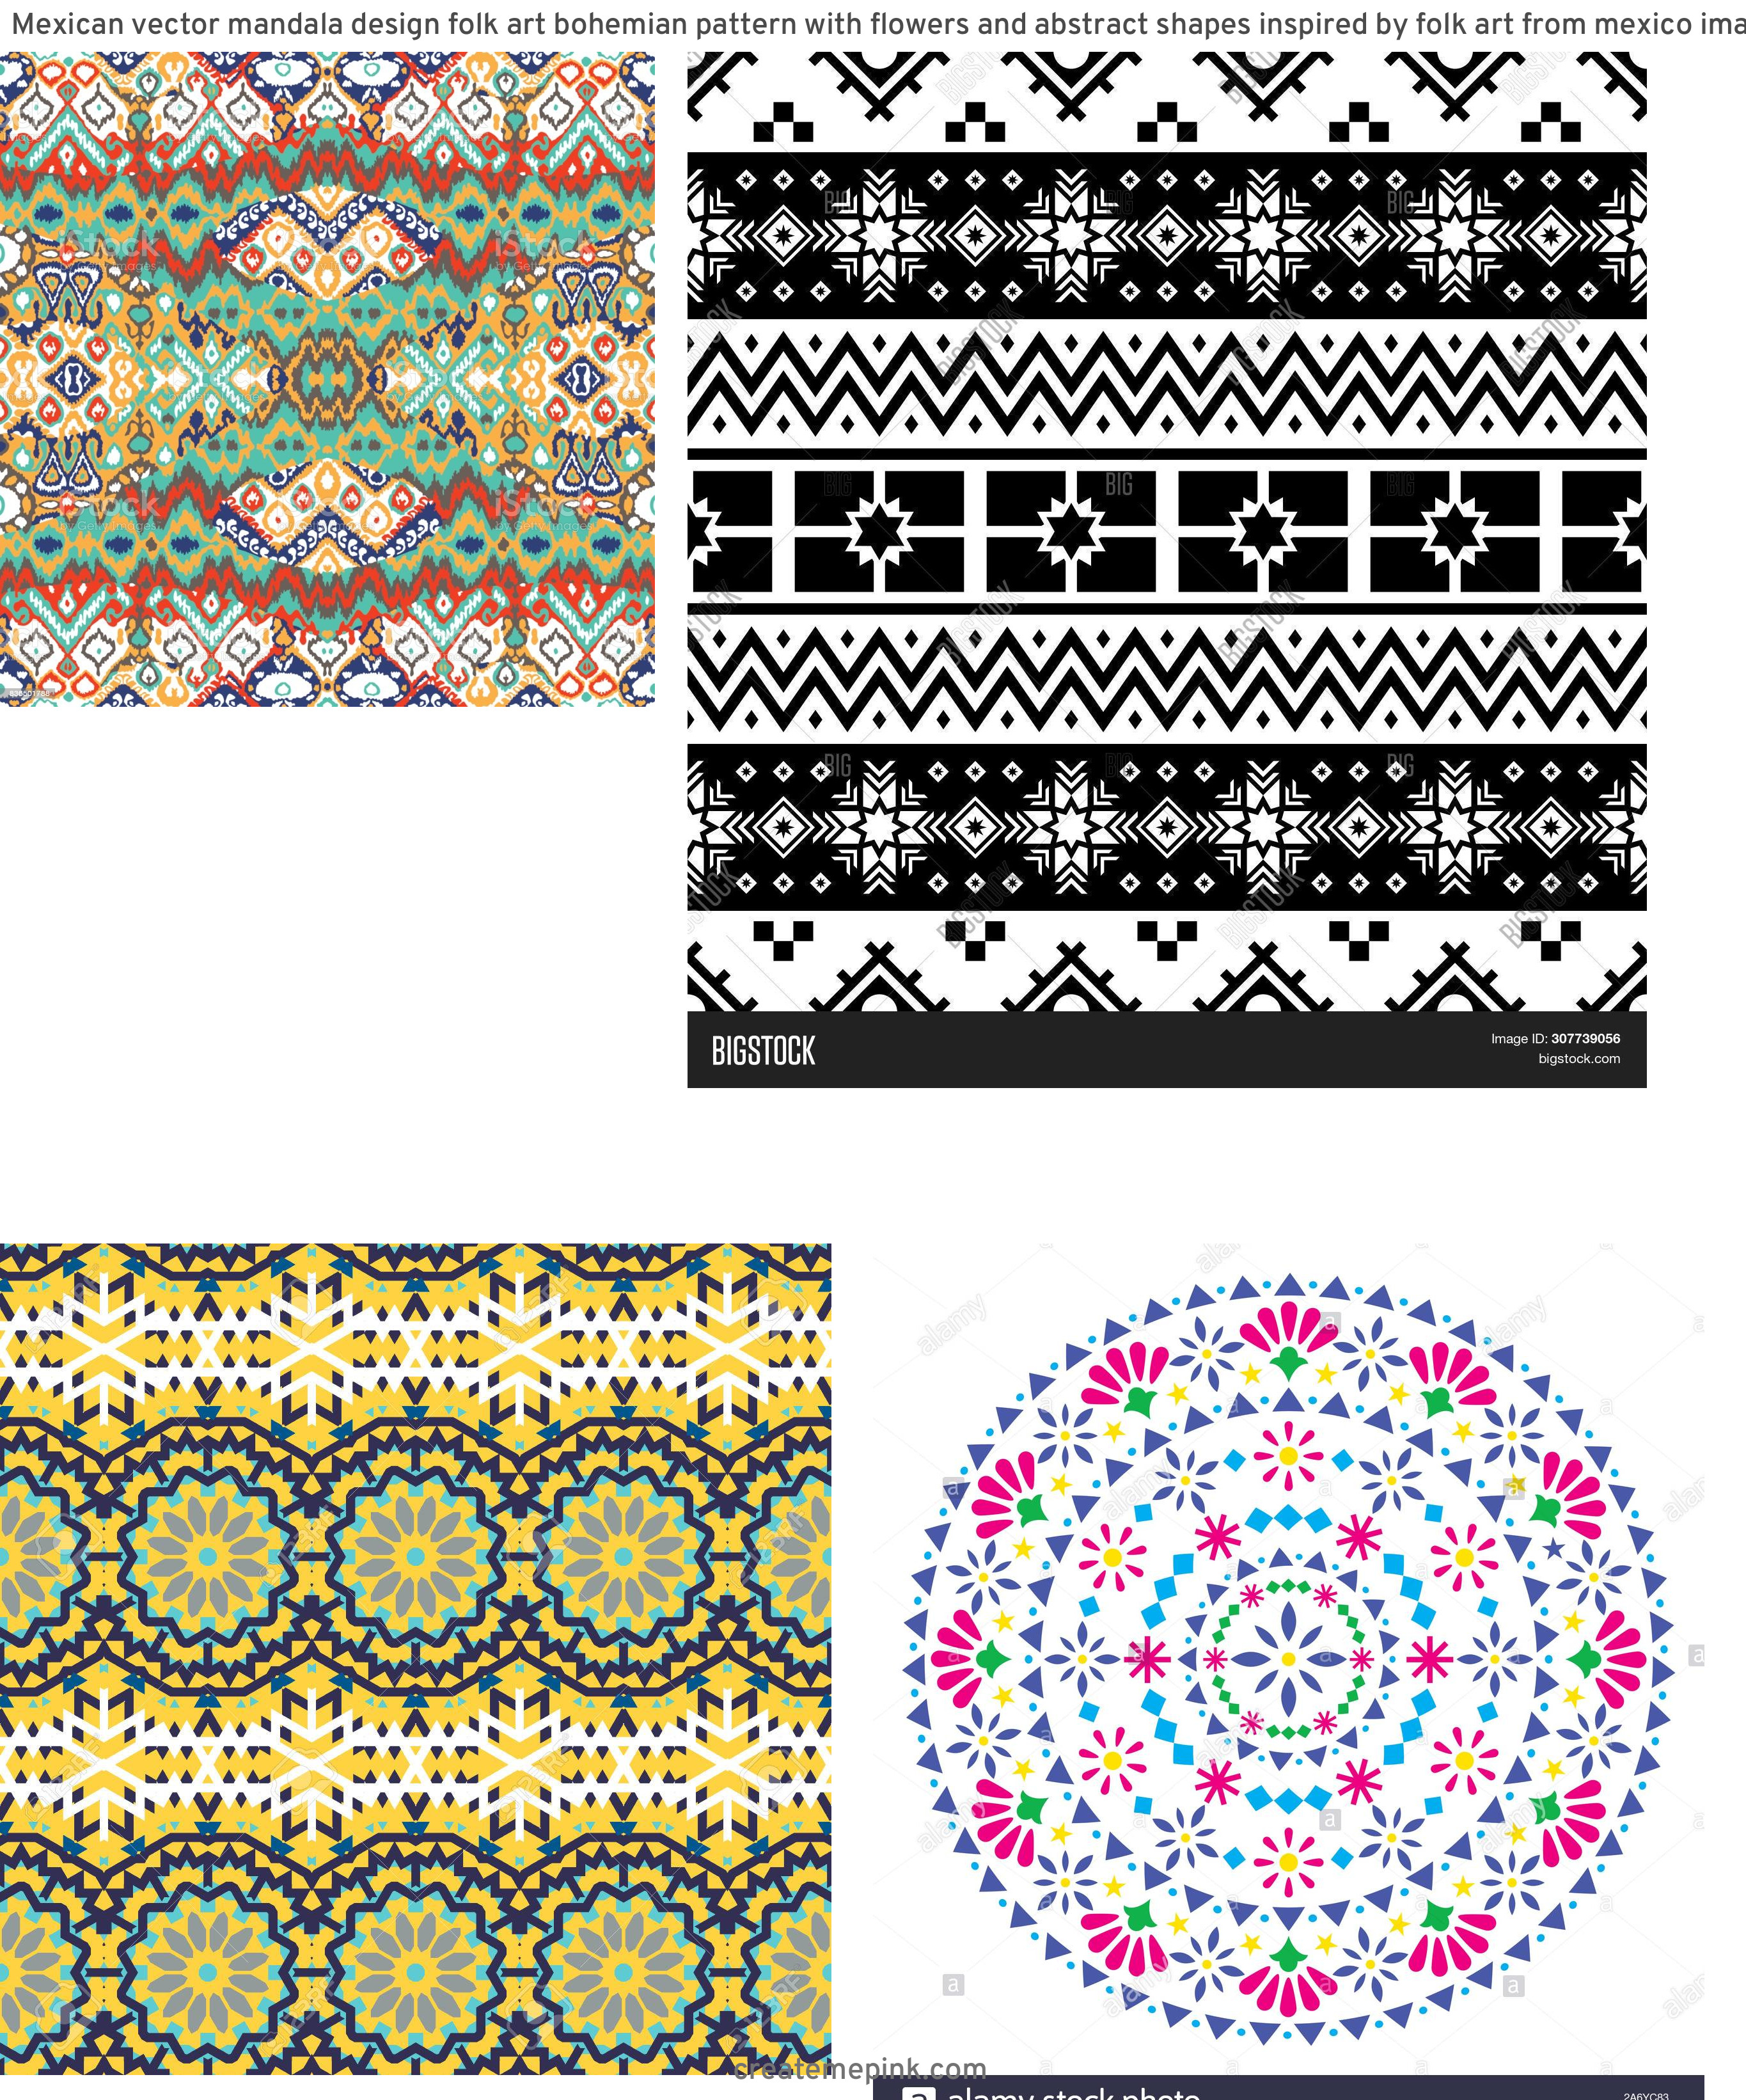 Bohemian Pattern Vector: Mexican Vector Mandala Design Folk Art Bohemian Pattern With Flowers And Abstract Shapes Inspired By Folk Art From Mexico Image